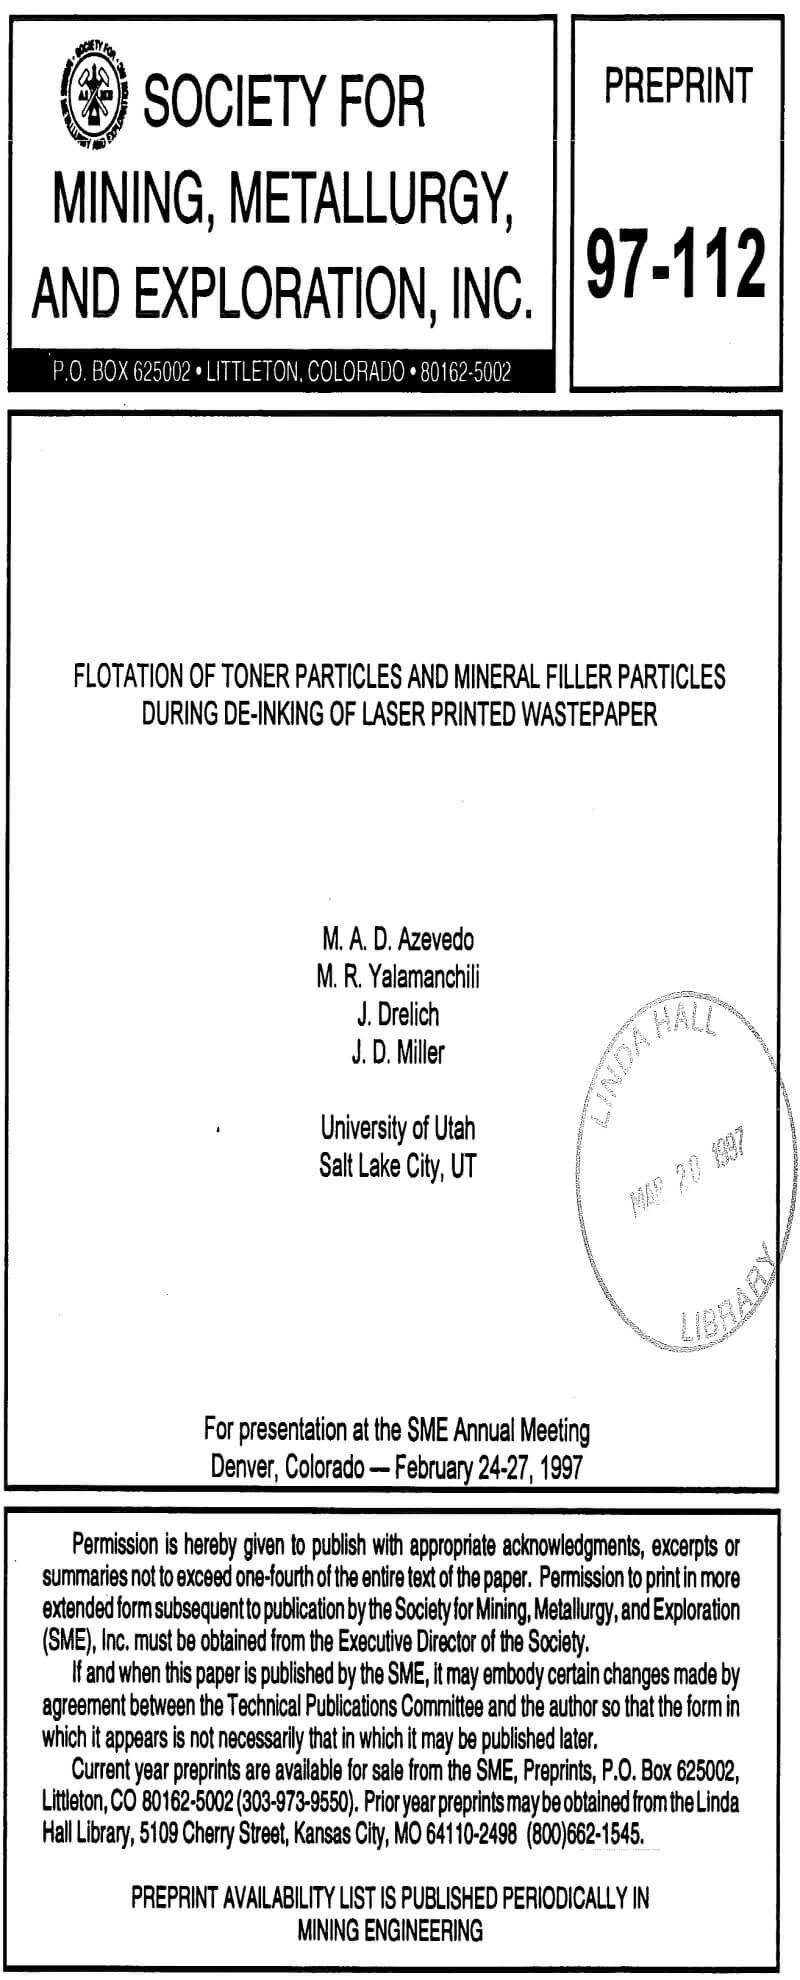 flotation of toner particles and mineral filler particles during de-inking of laser printed wastepaper